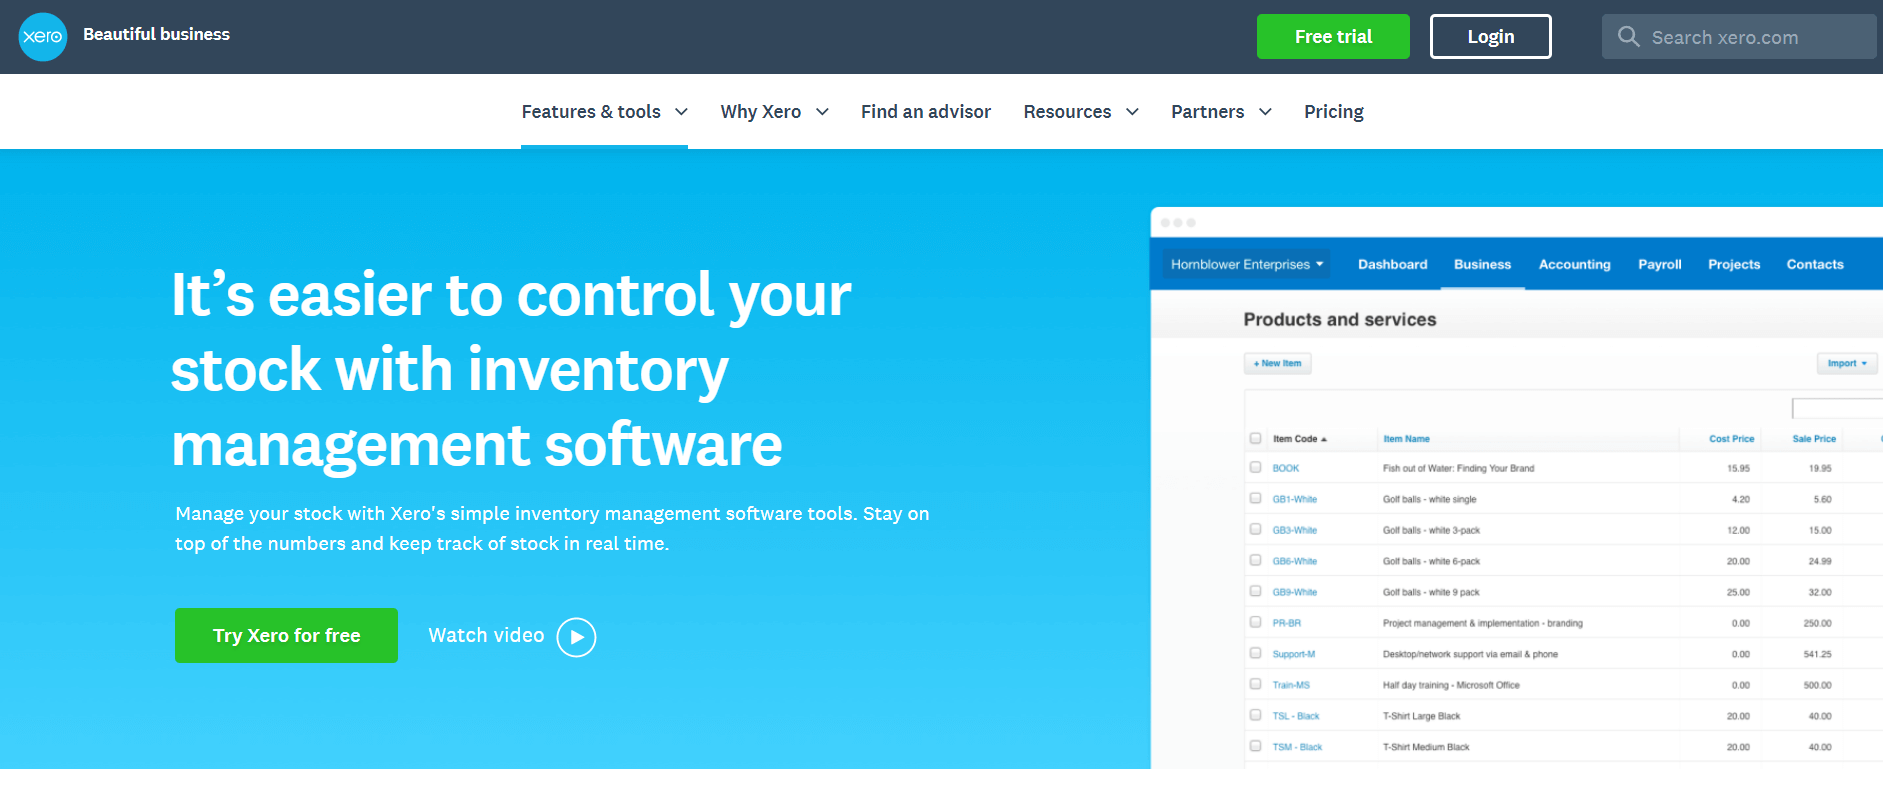 xero inventory management software